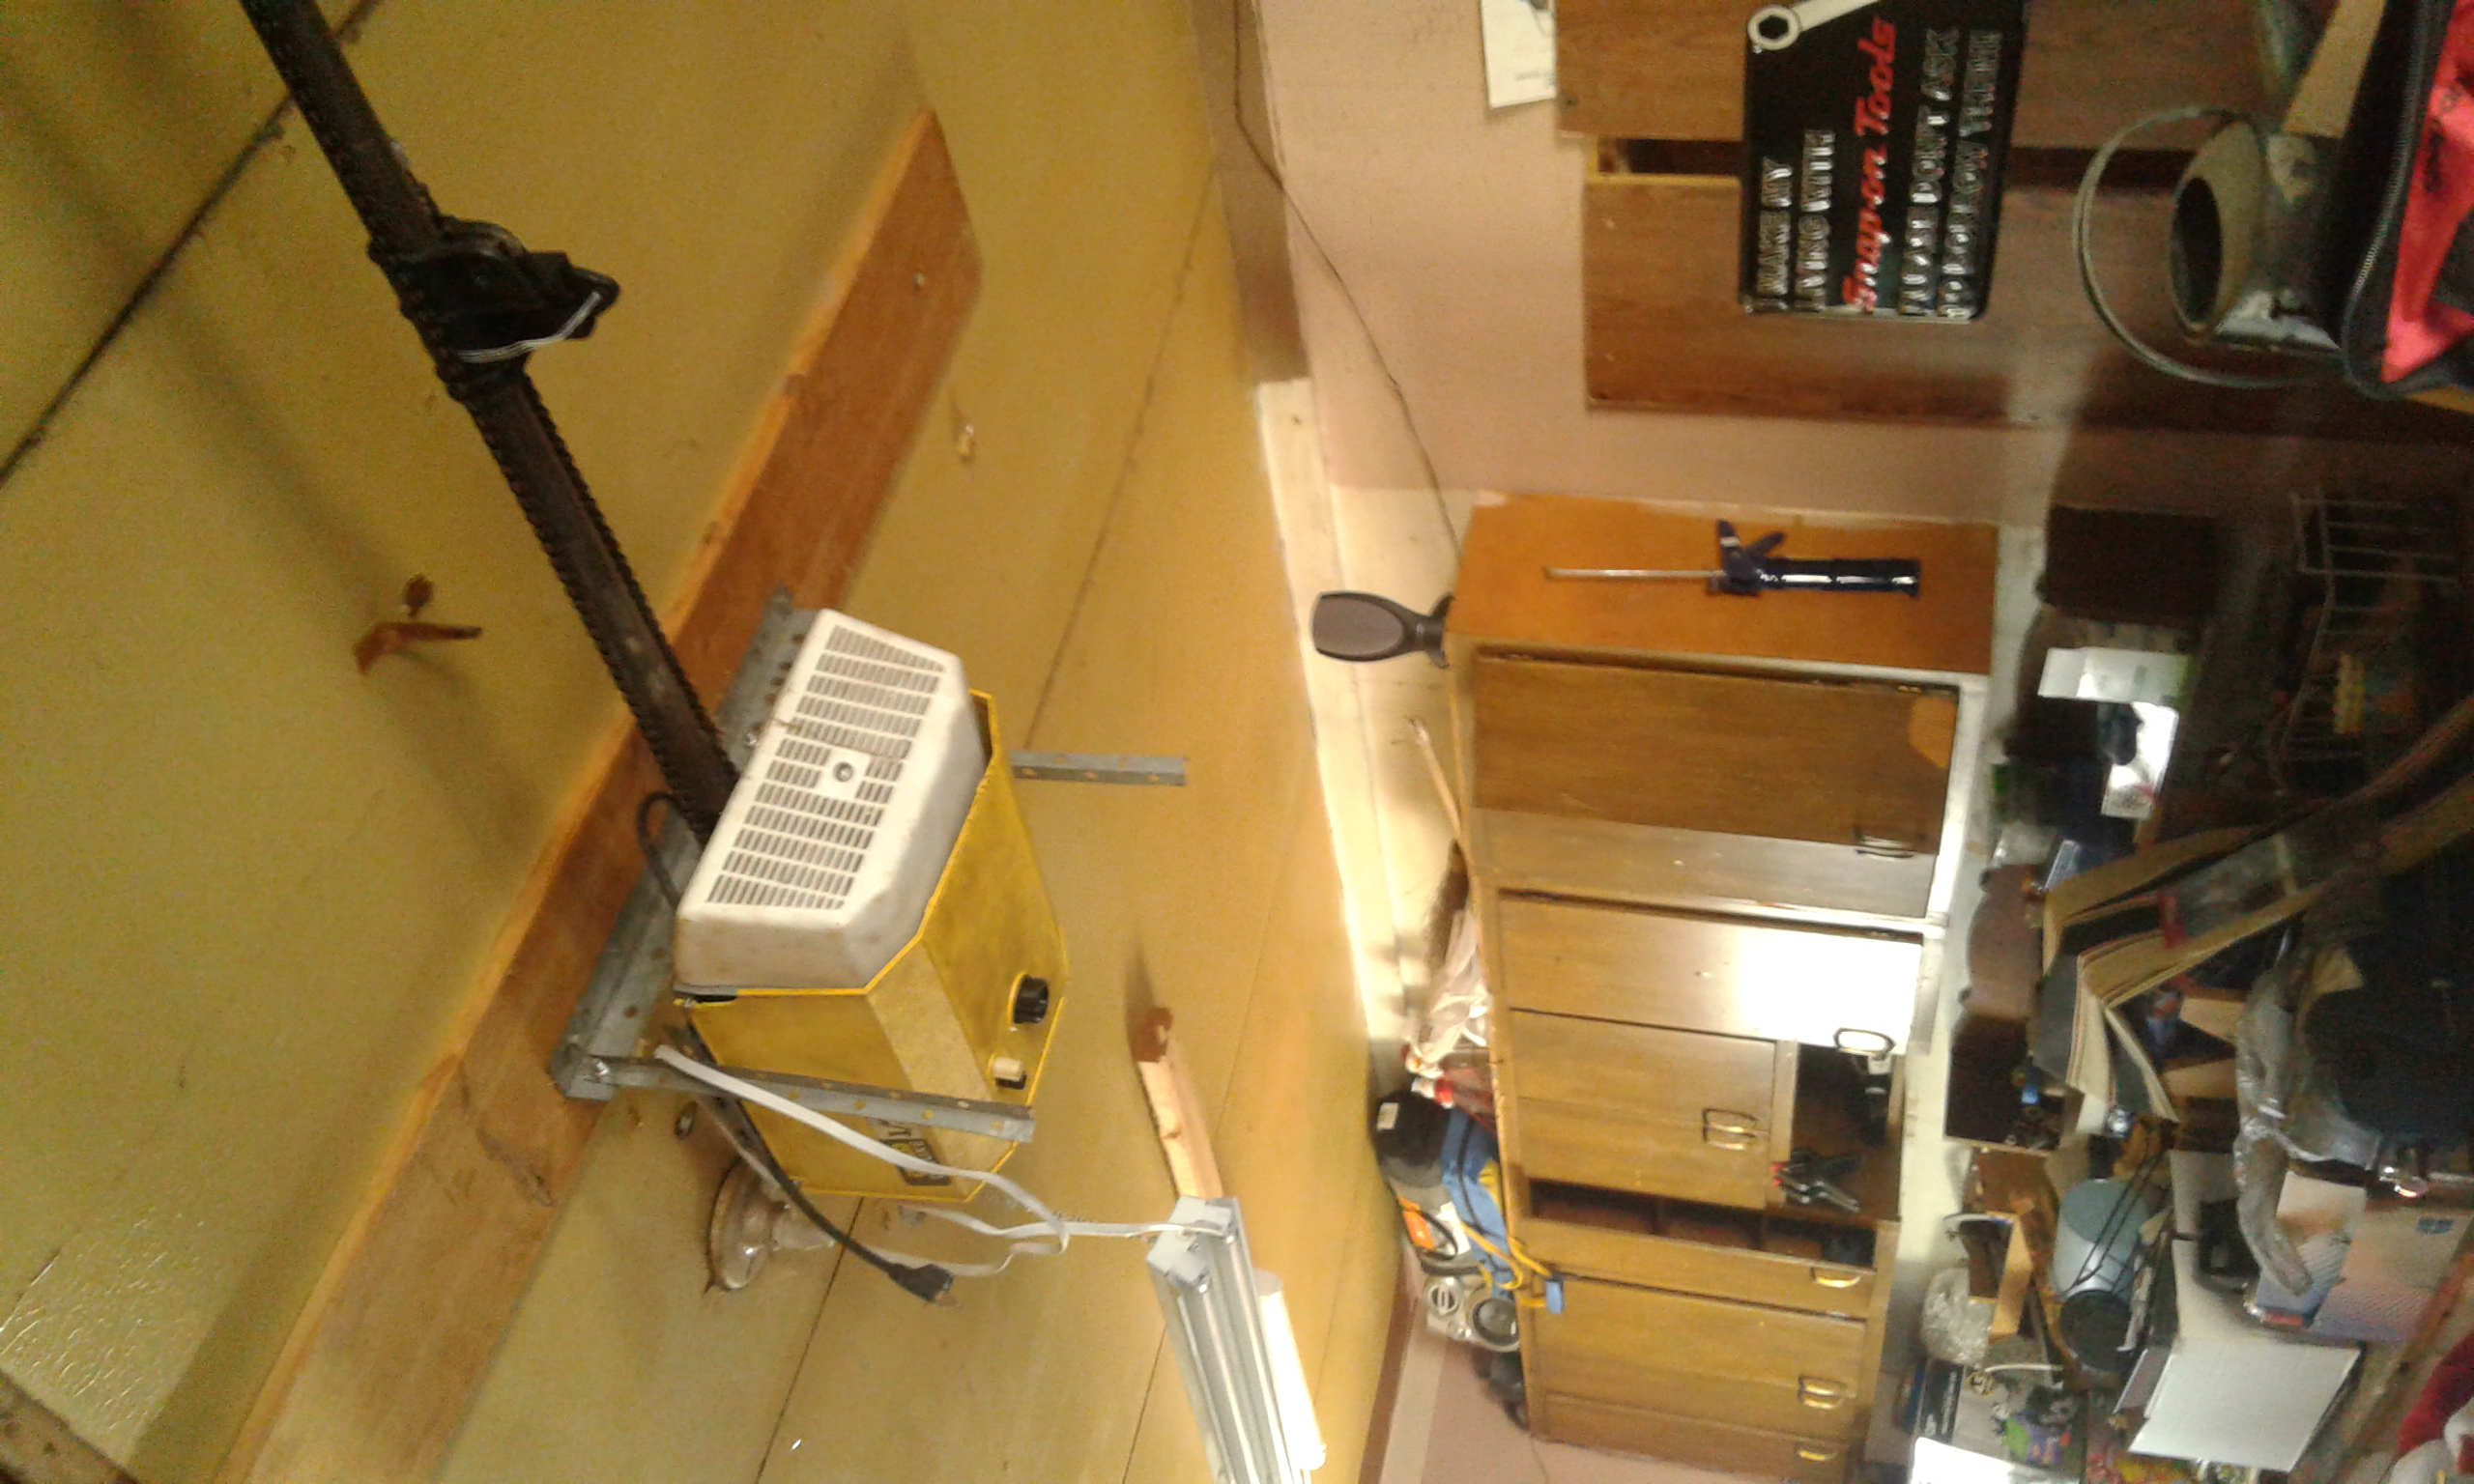 Snap Two Url S For Sale Internachi Inspection Forum Photos On Pinterest 20 Amp Outlet 15 Circuit How To Inspect Hvac Systems Course Page 737